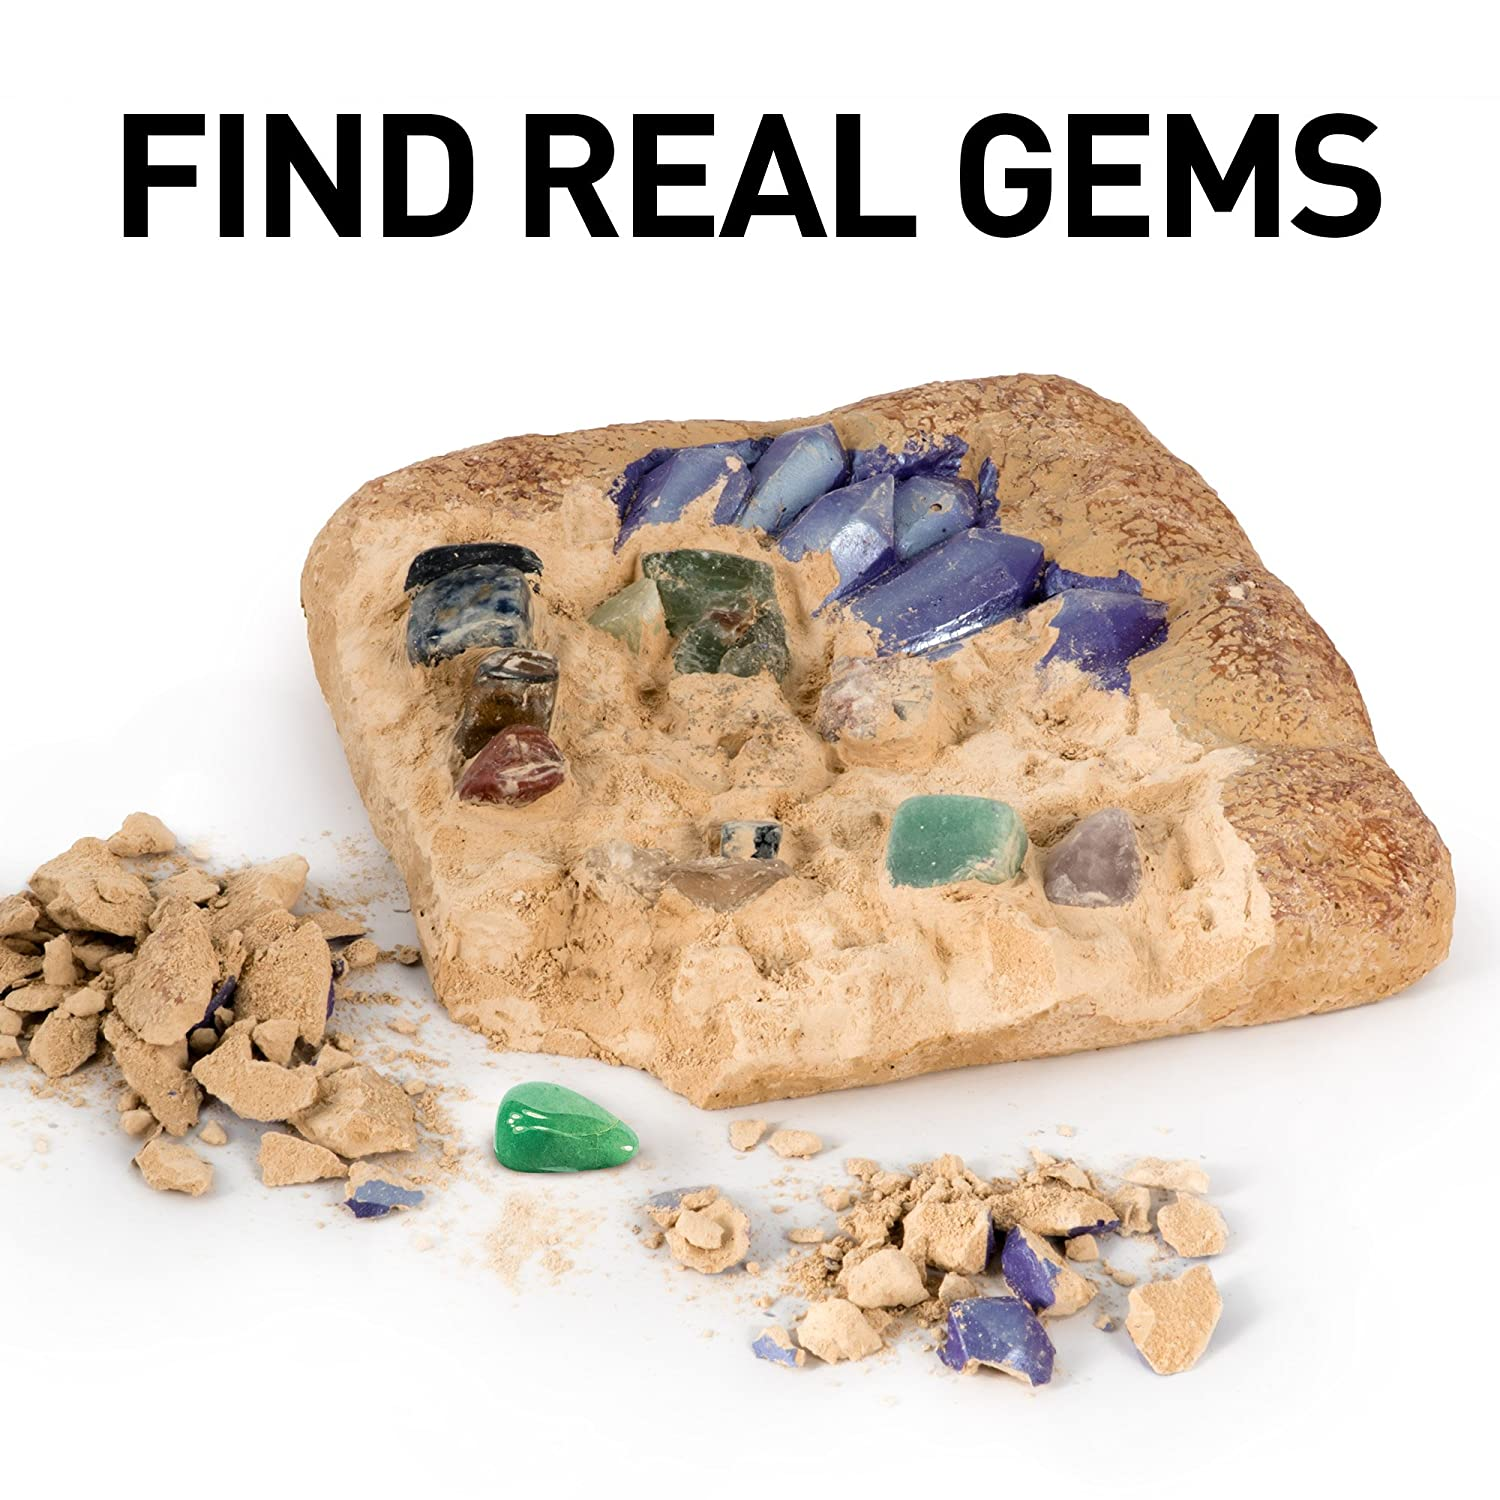 National Geographic Mega Gemstone Mine – Dig Up 15 Real Gems